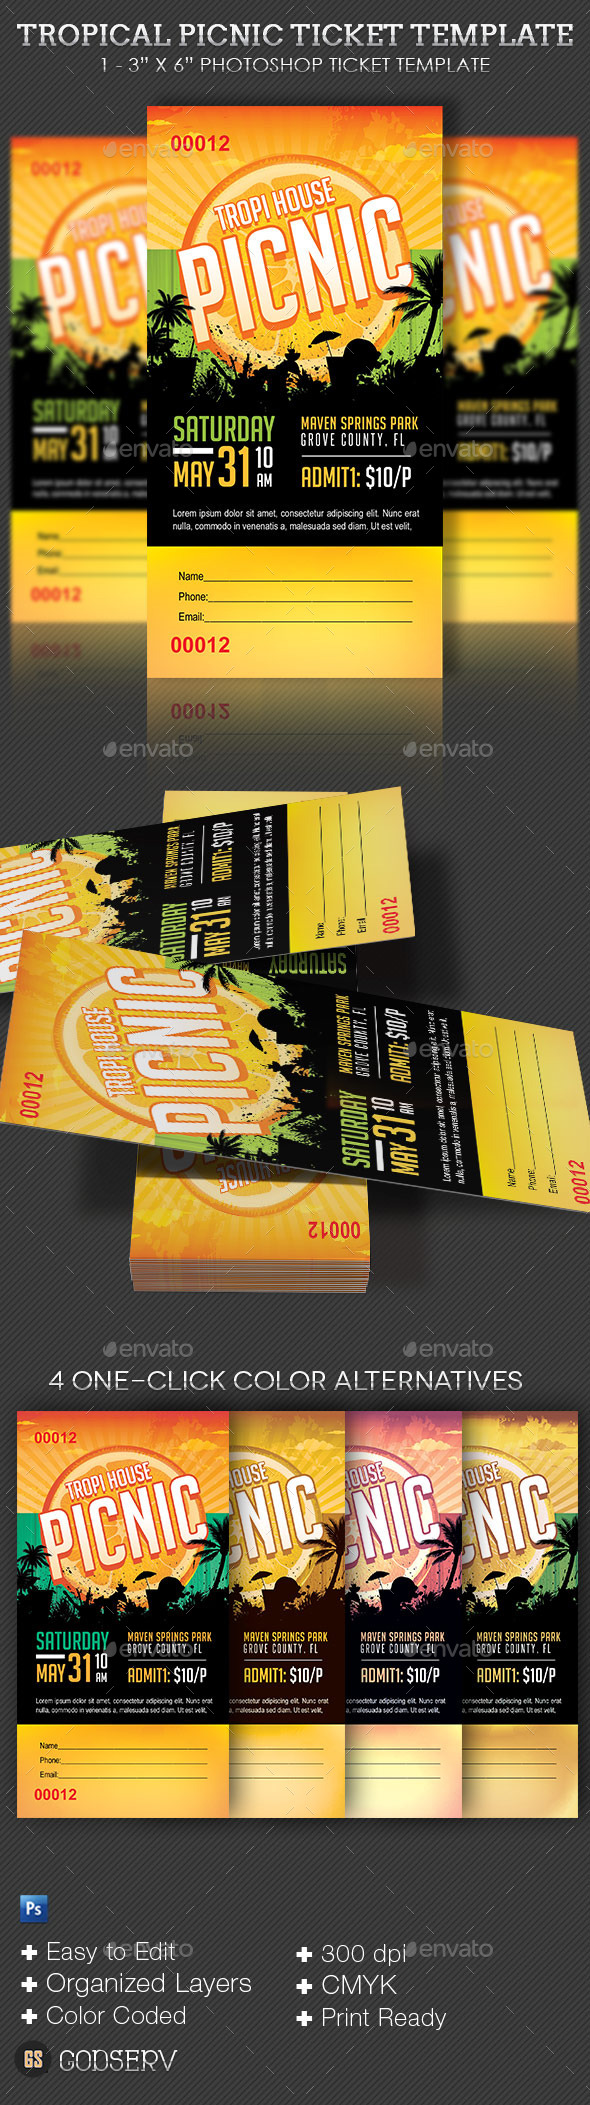 Tropical Picnic Ticket Template - Miscellaneous Print Templates